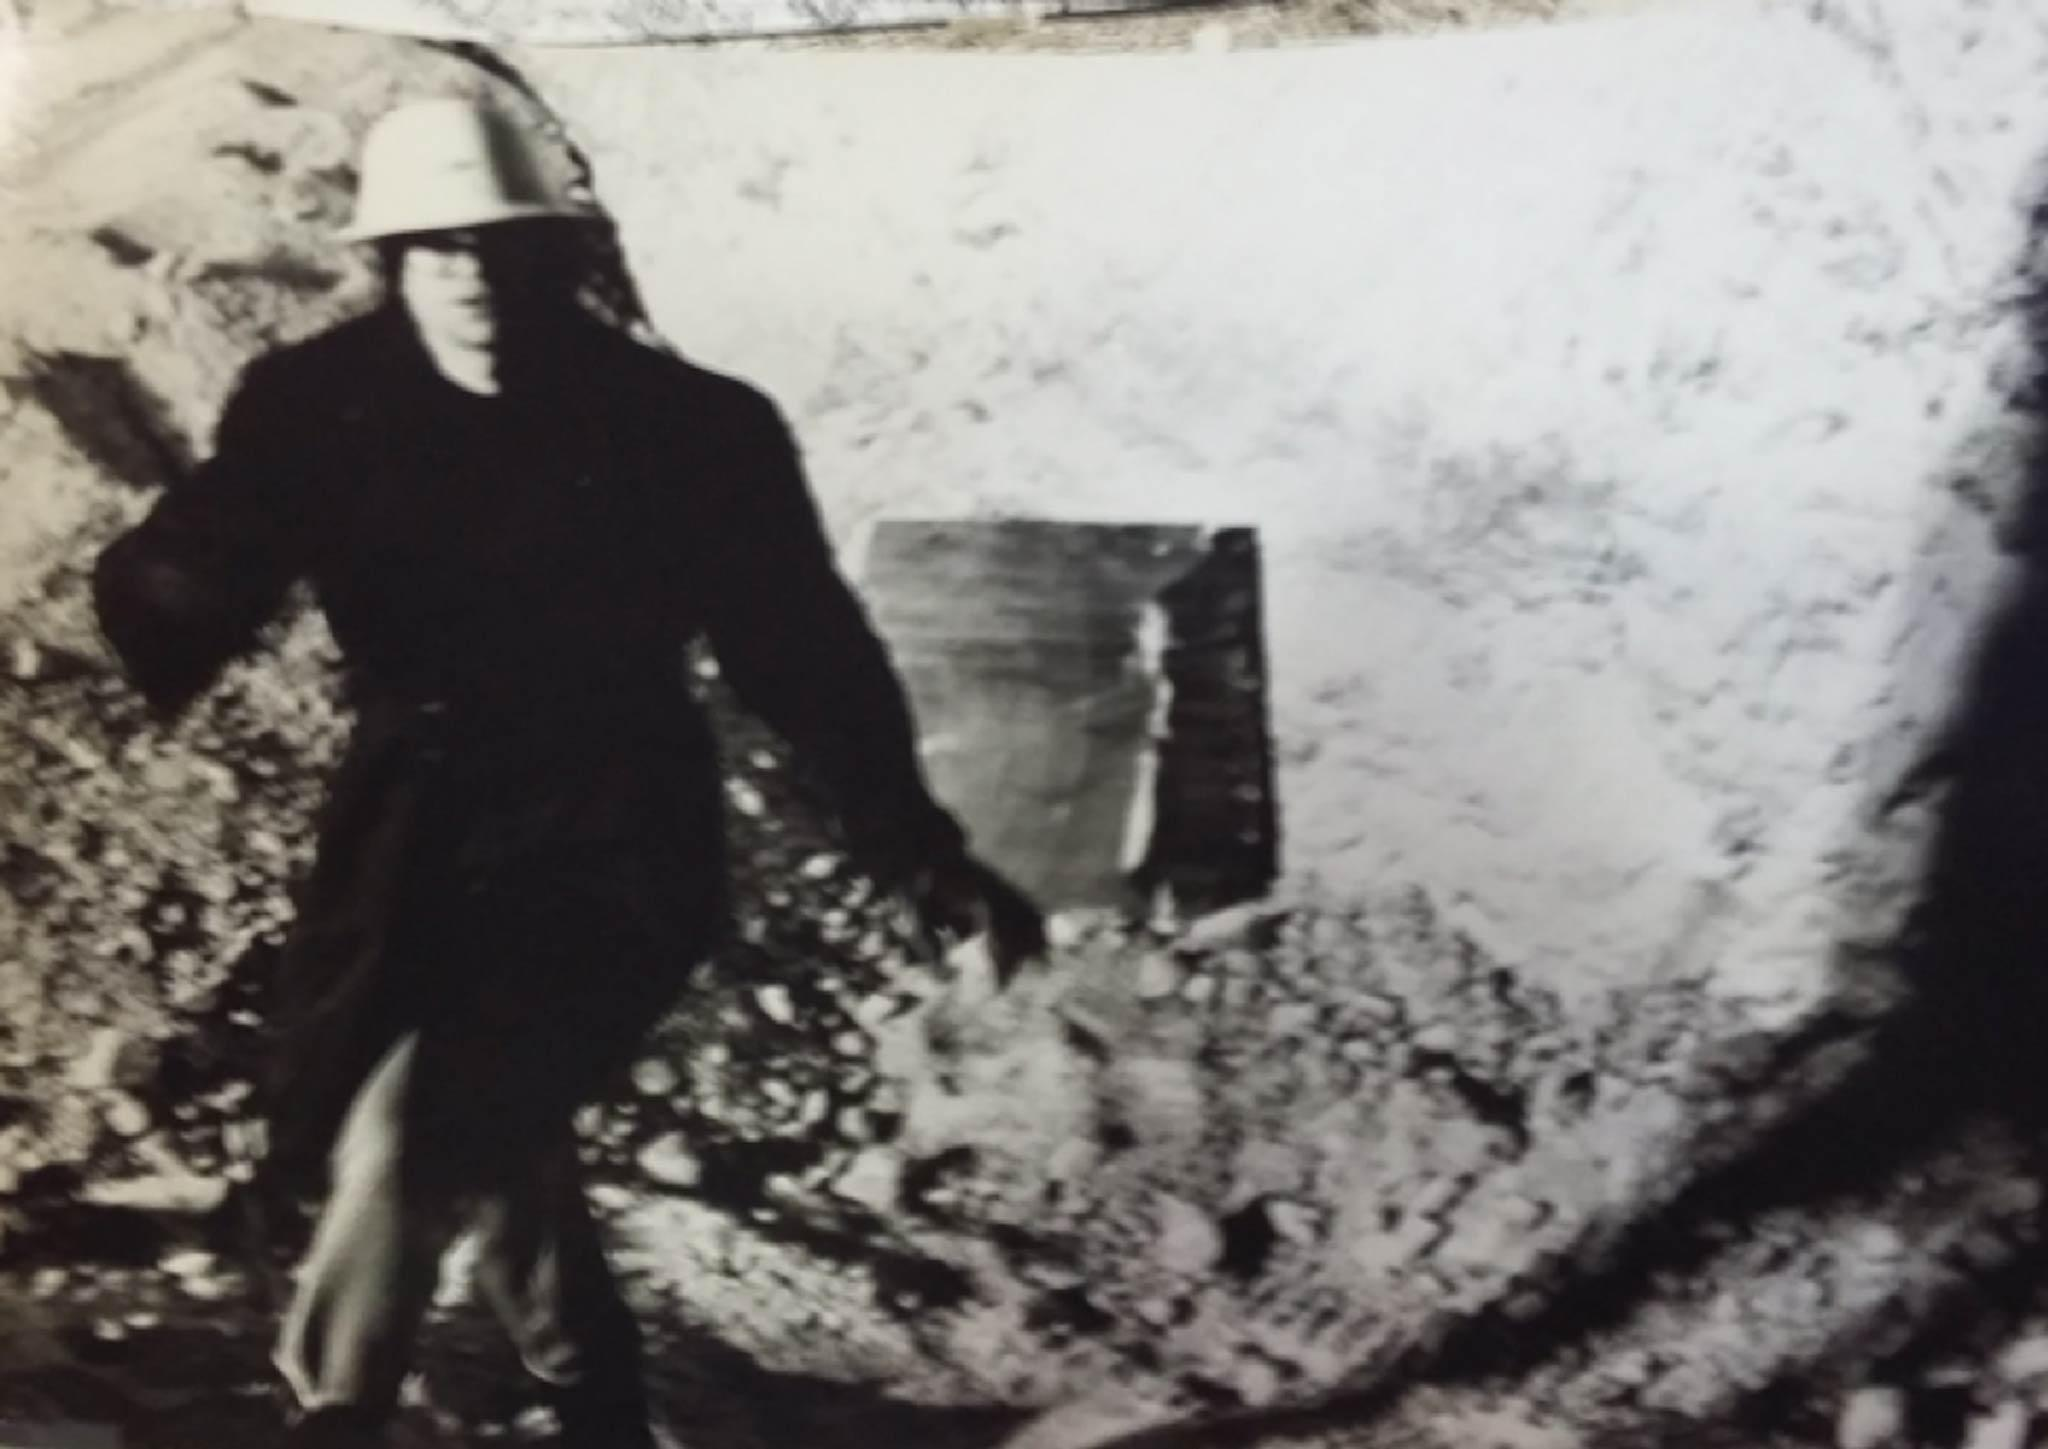 person wearing a large black coat and white hard hat looks at the camera with an obscure earthen background behind.